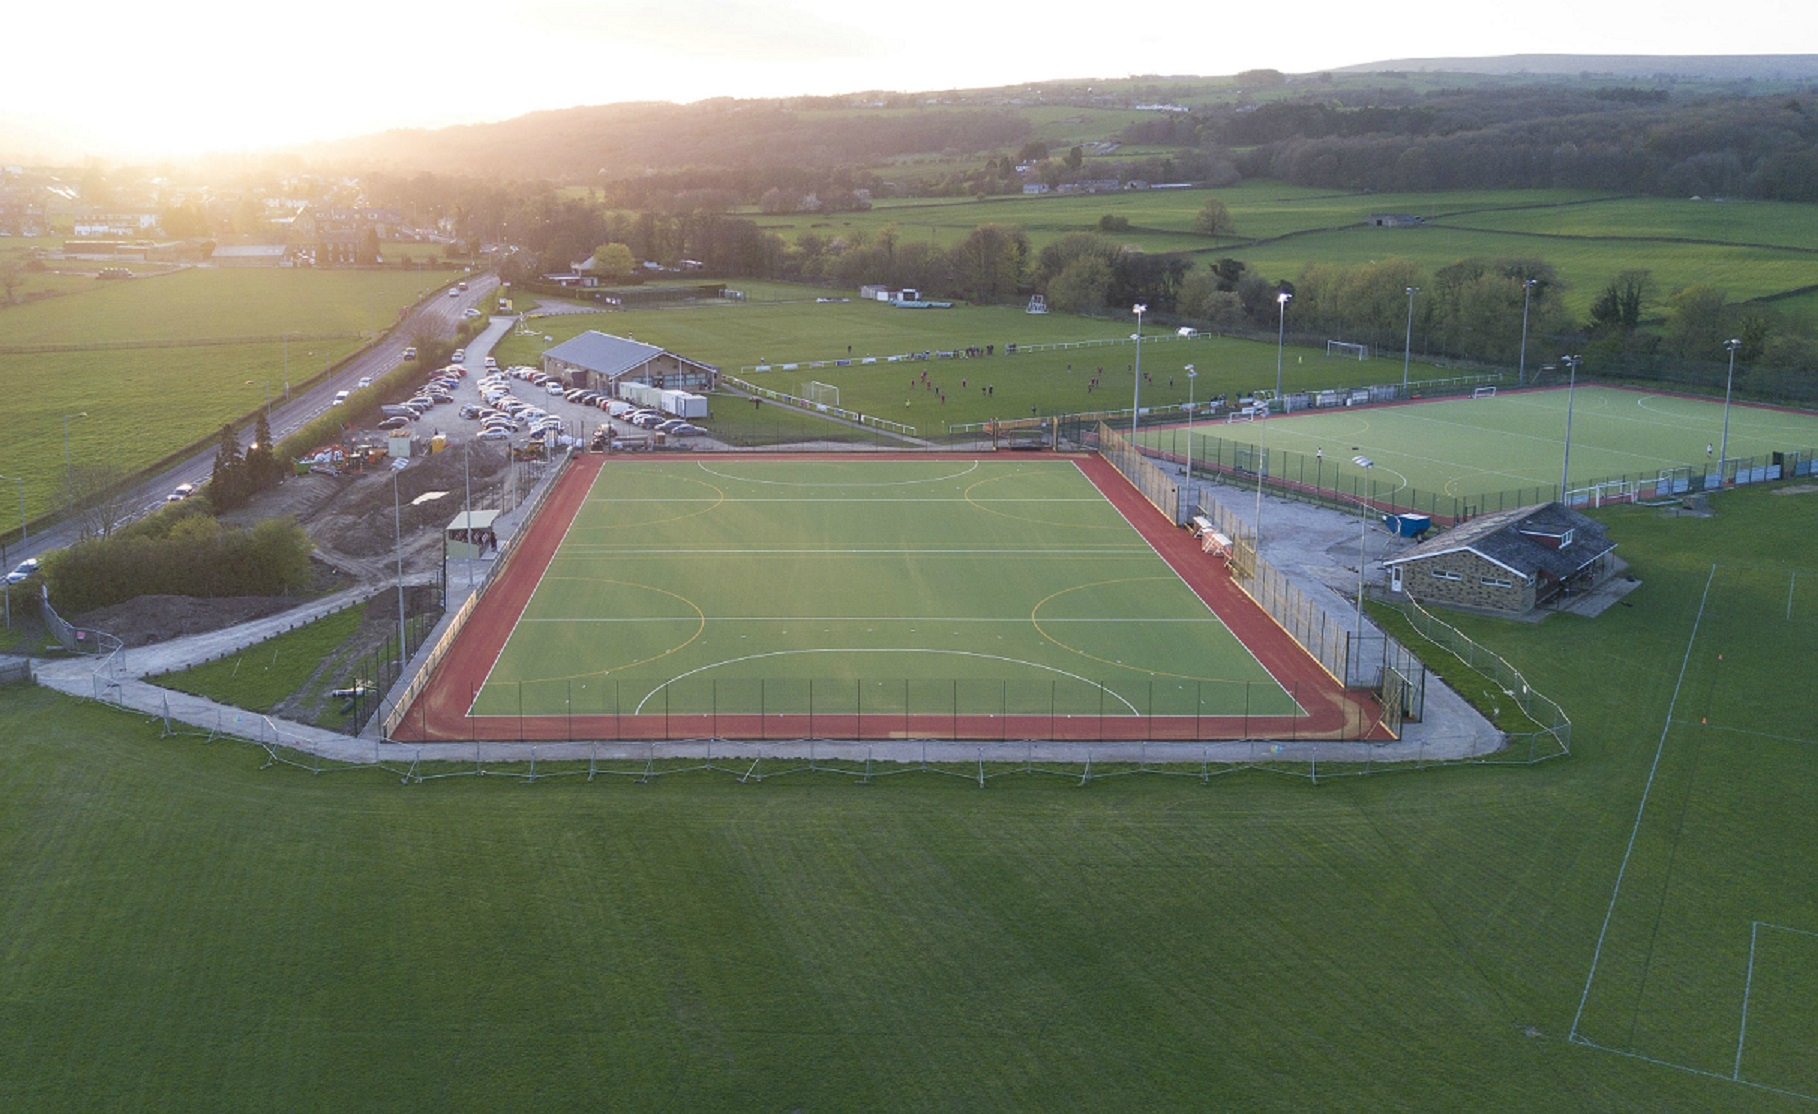 SIS Pitches work at Ben Rhydding Hockey Club